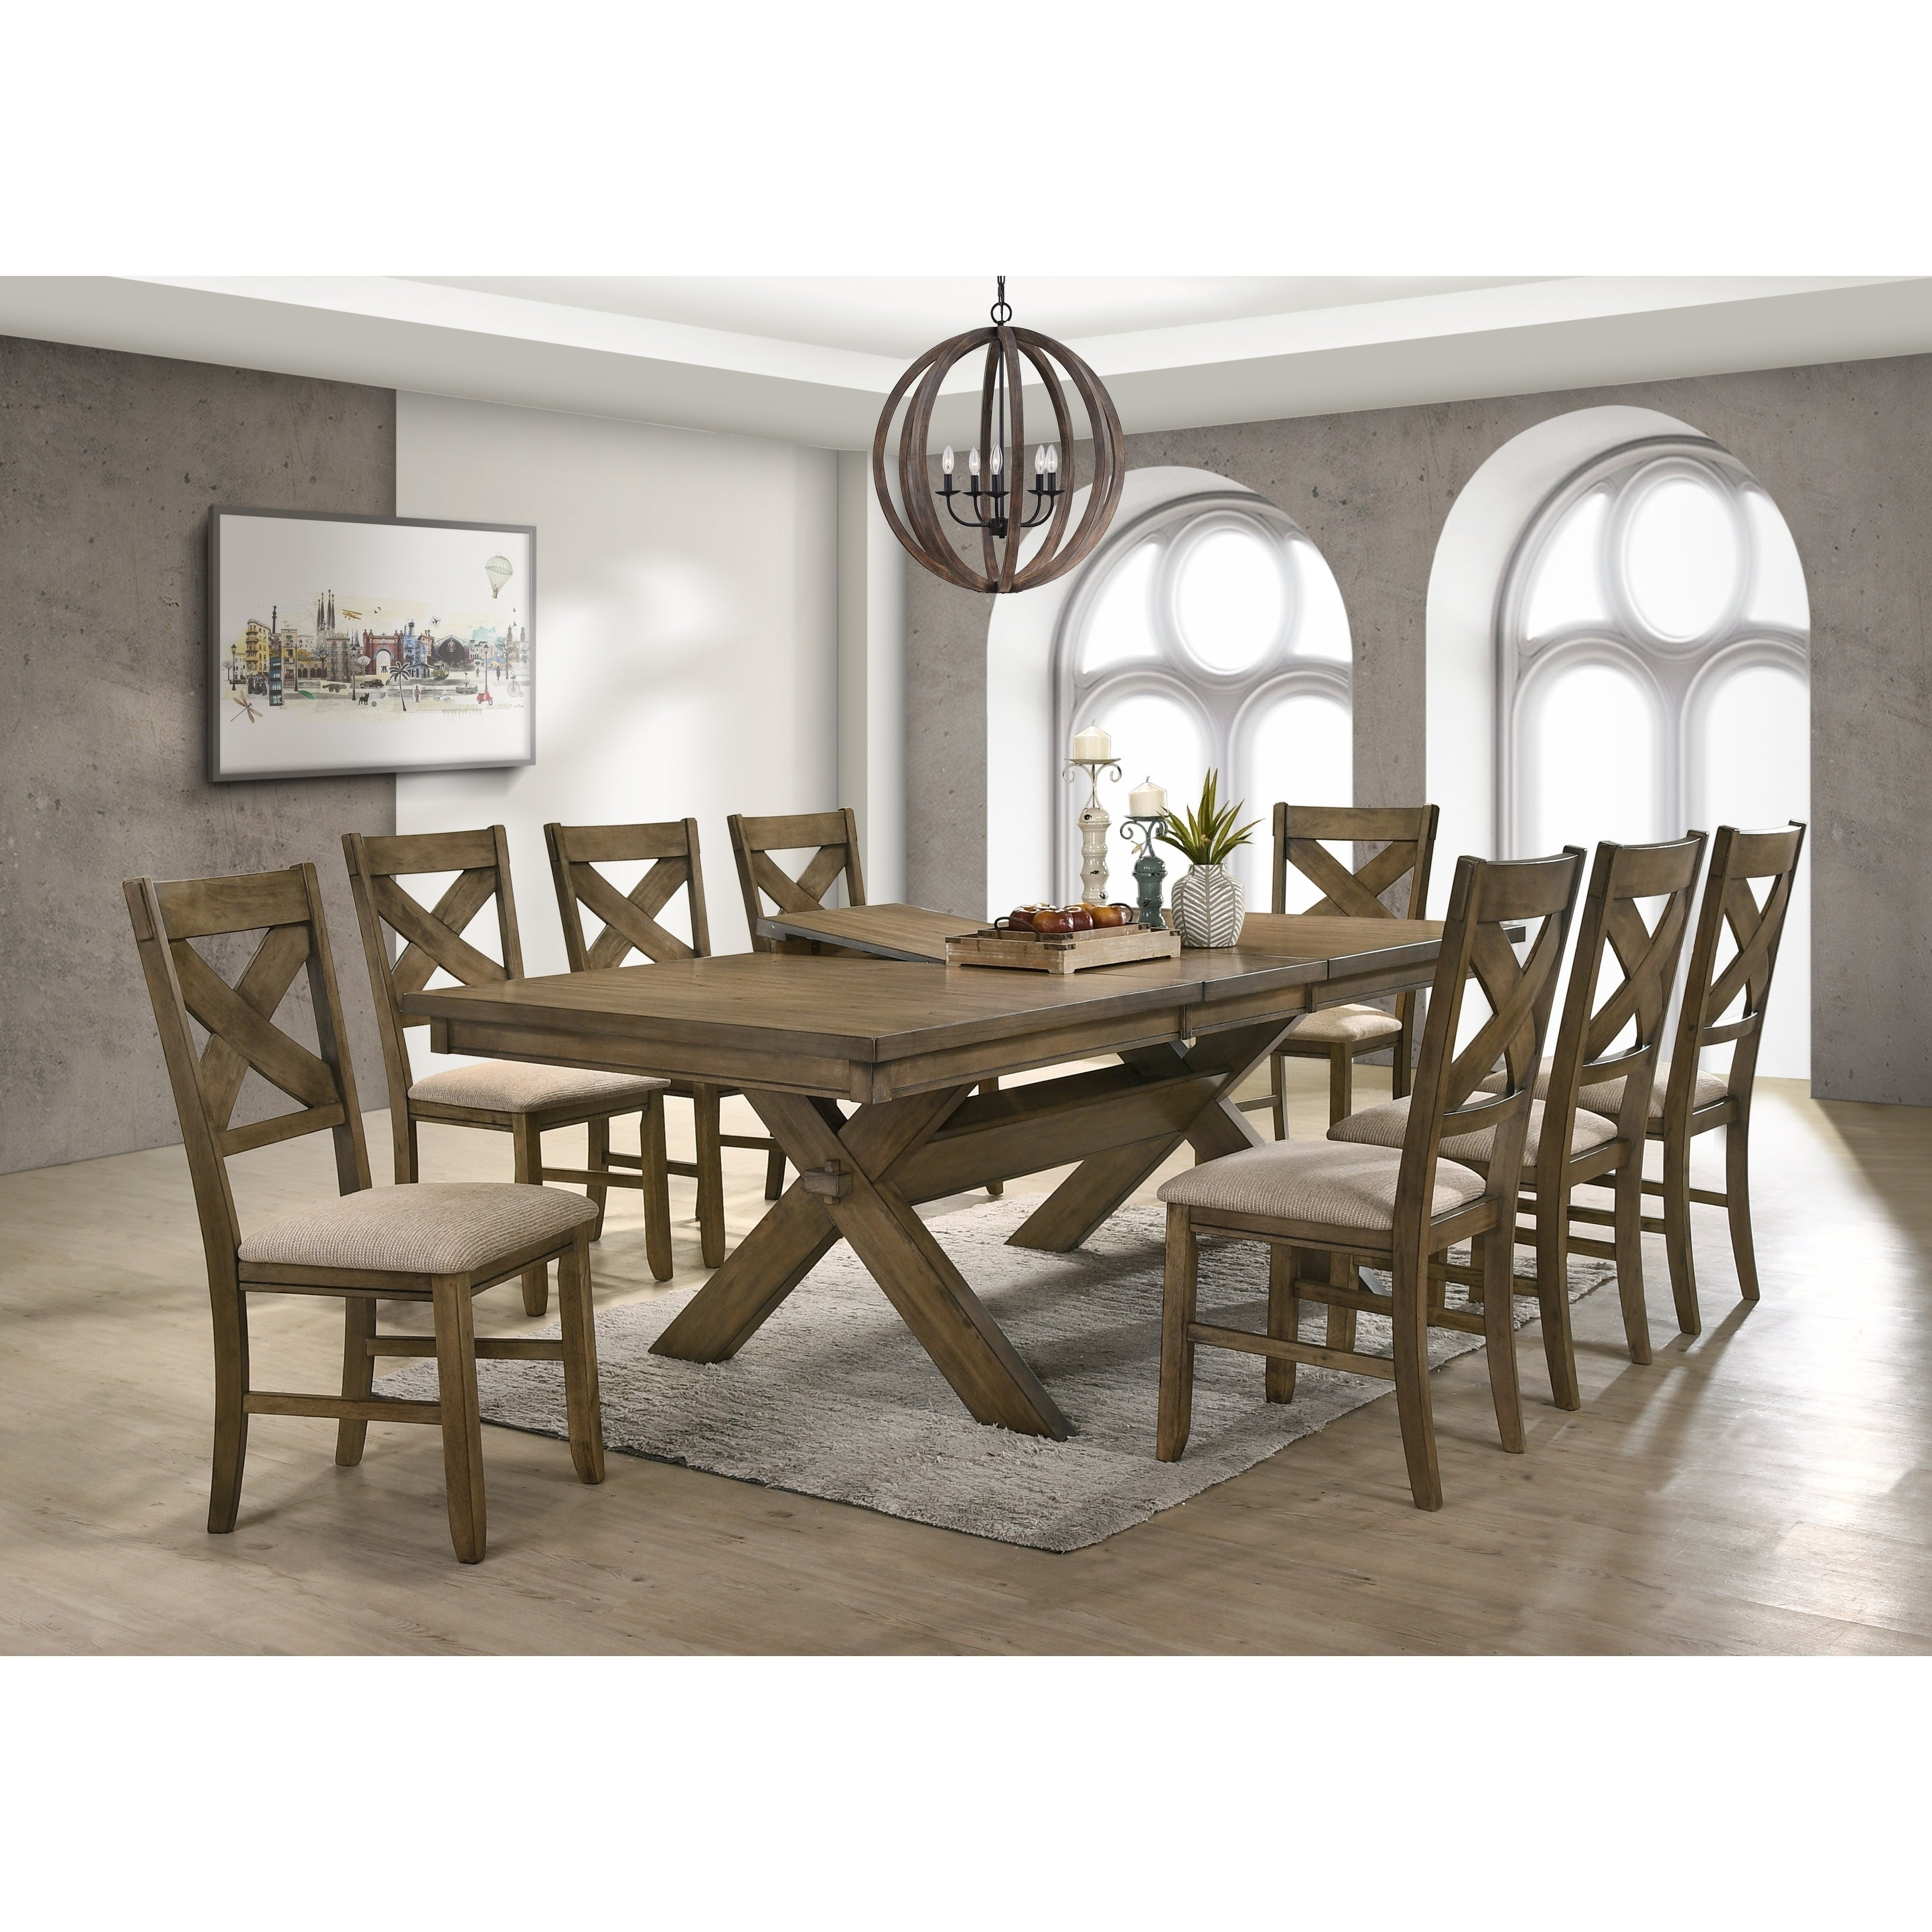 Raven Wood Dining Set Butterfly Leaf Table Eight Chairs